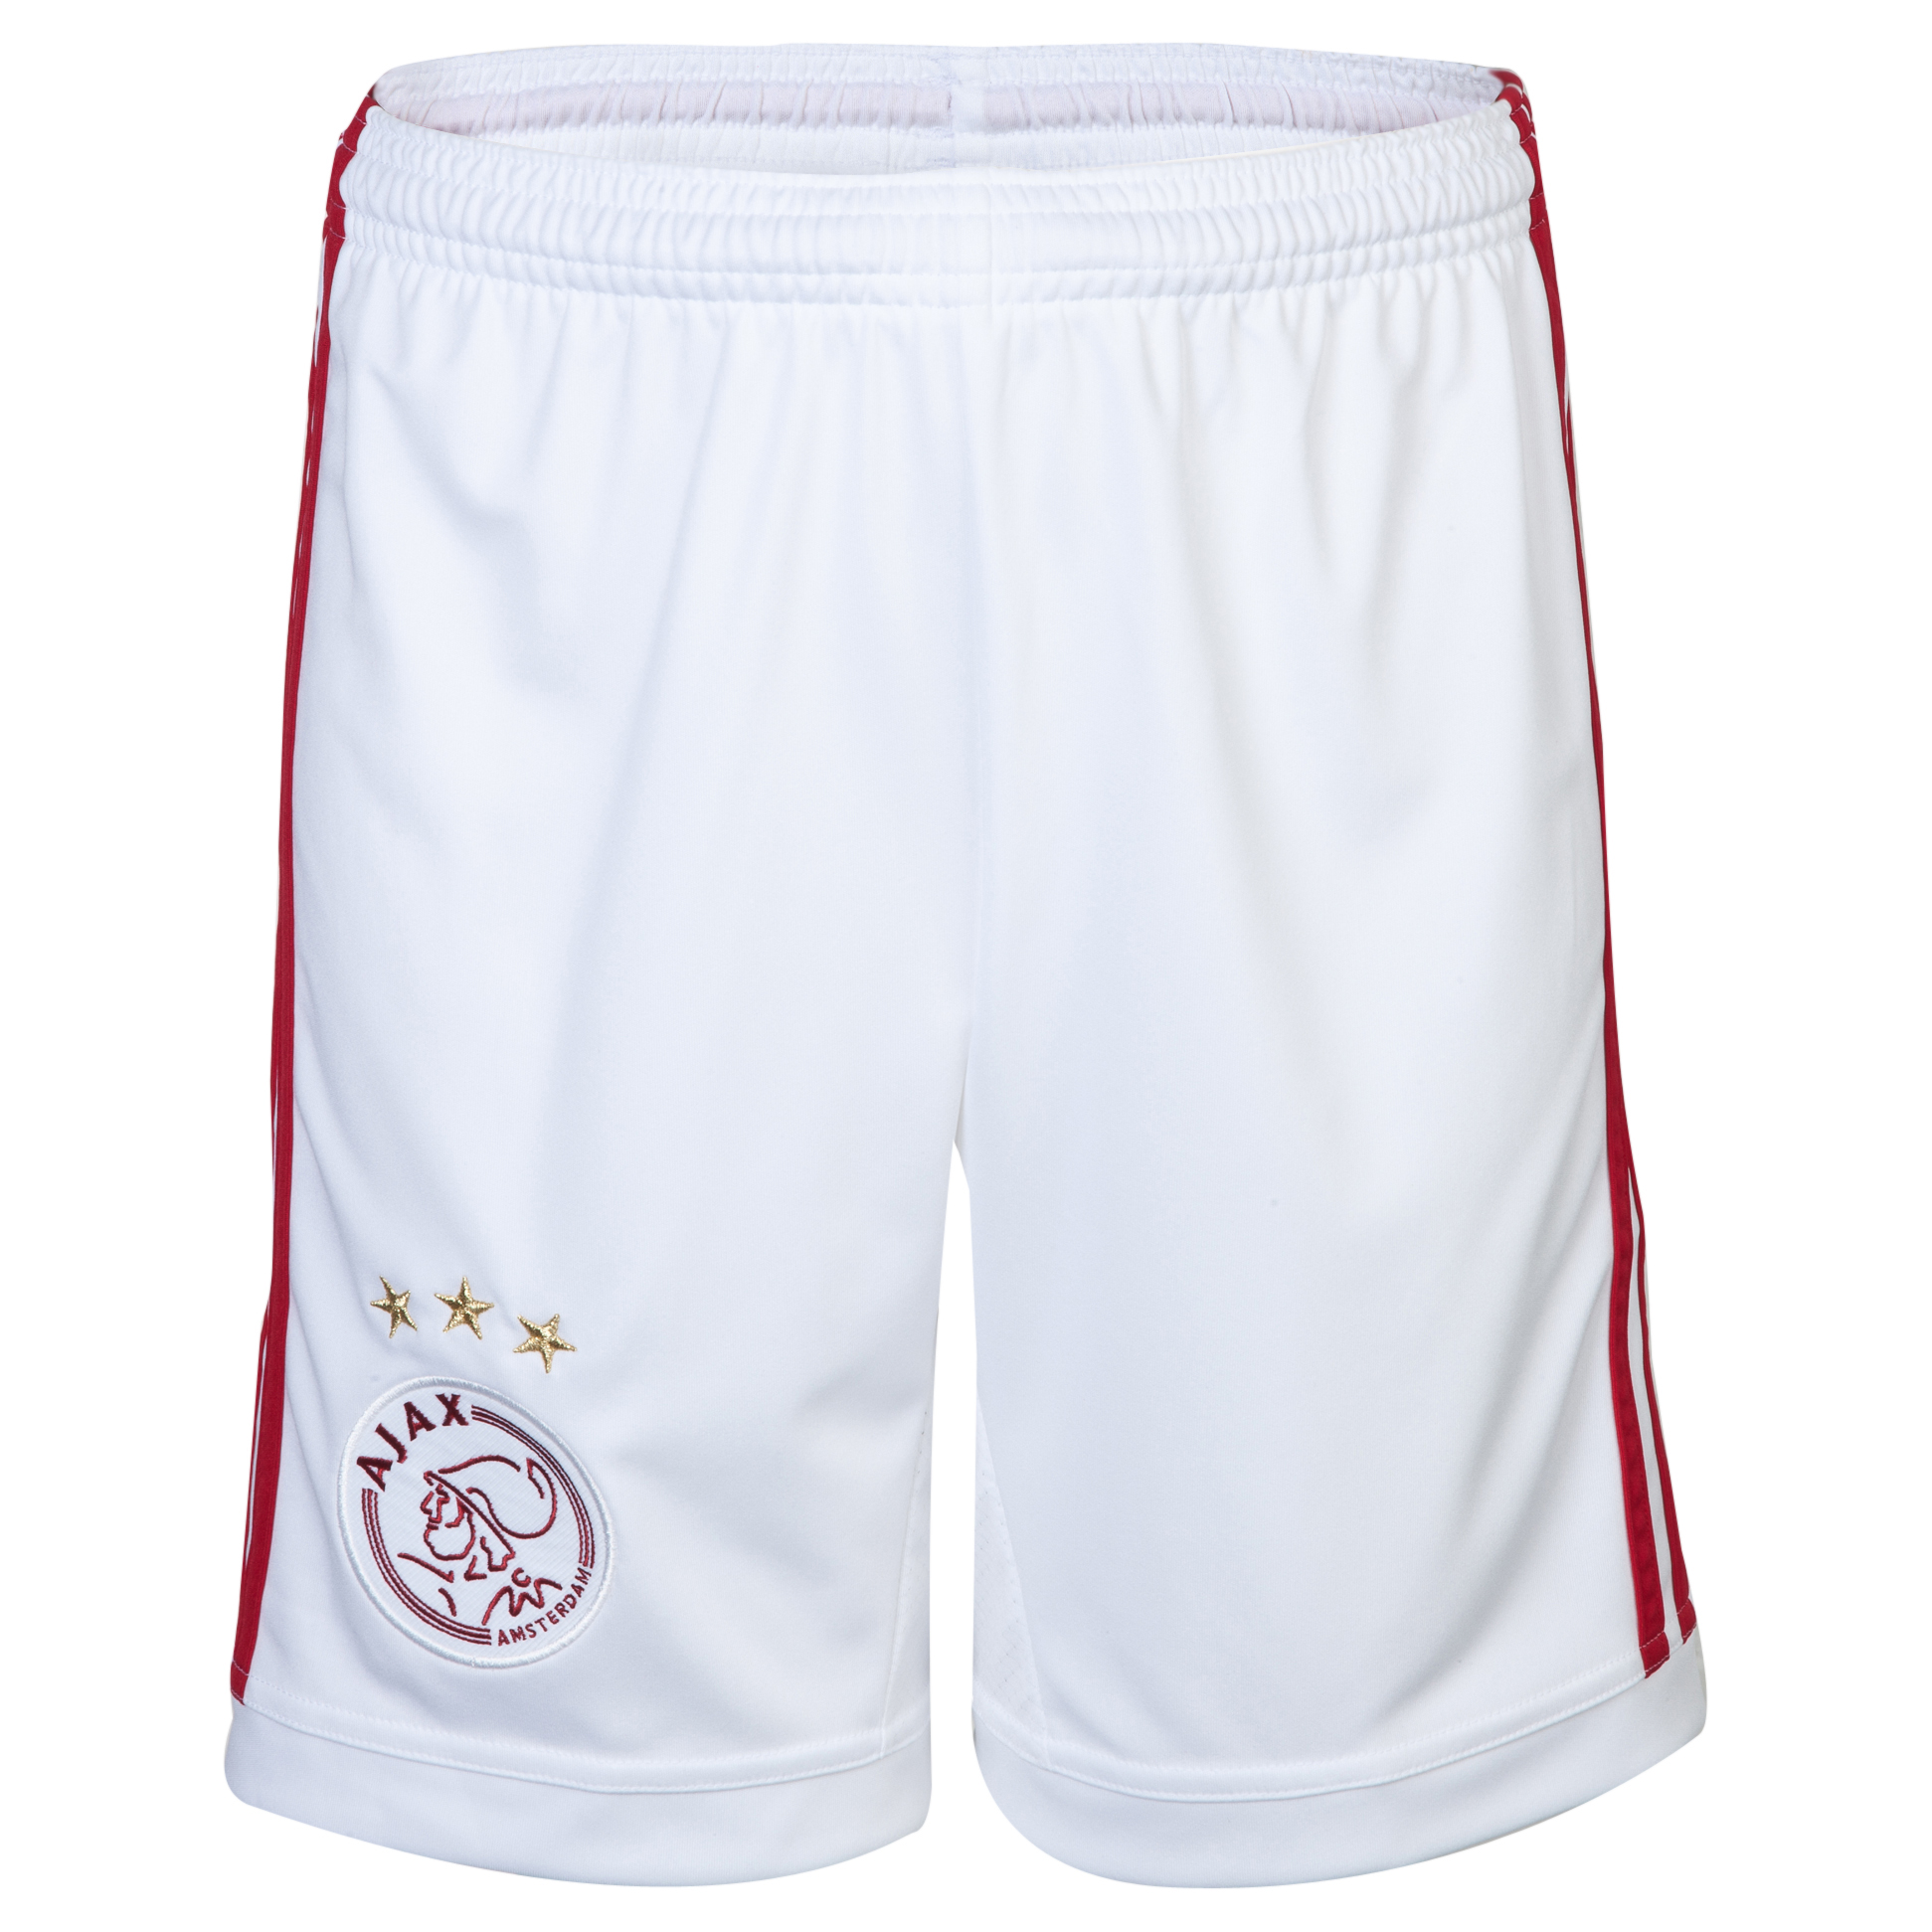 Ajax Home Shorts 2013/14